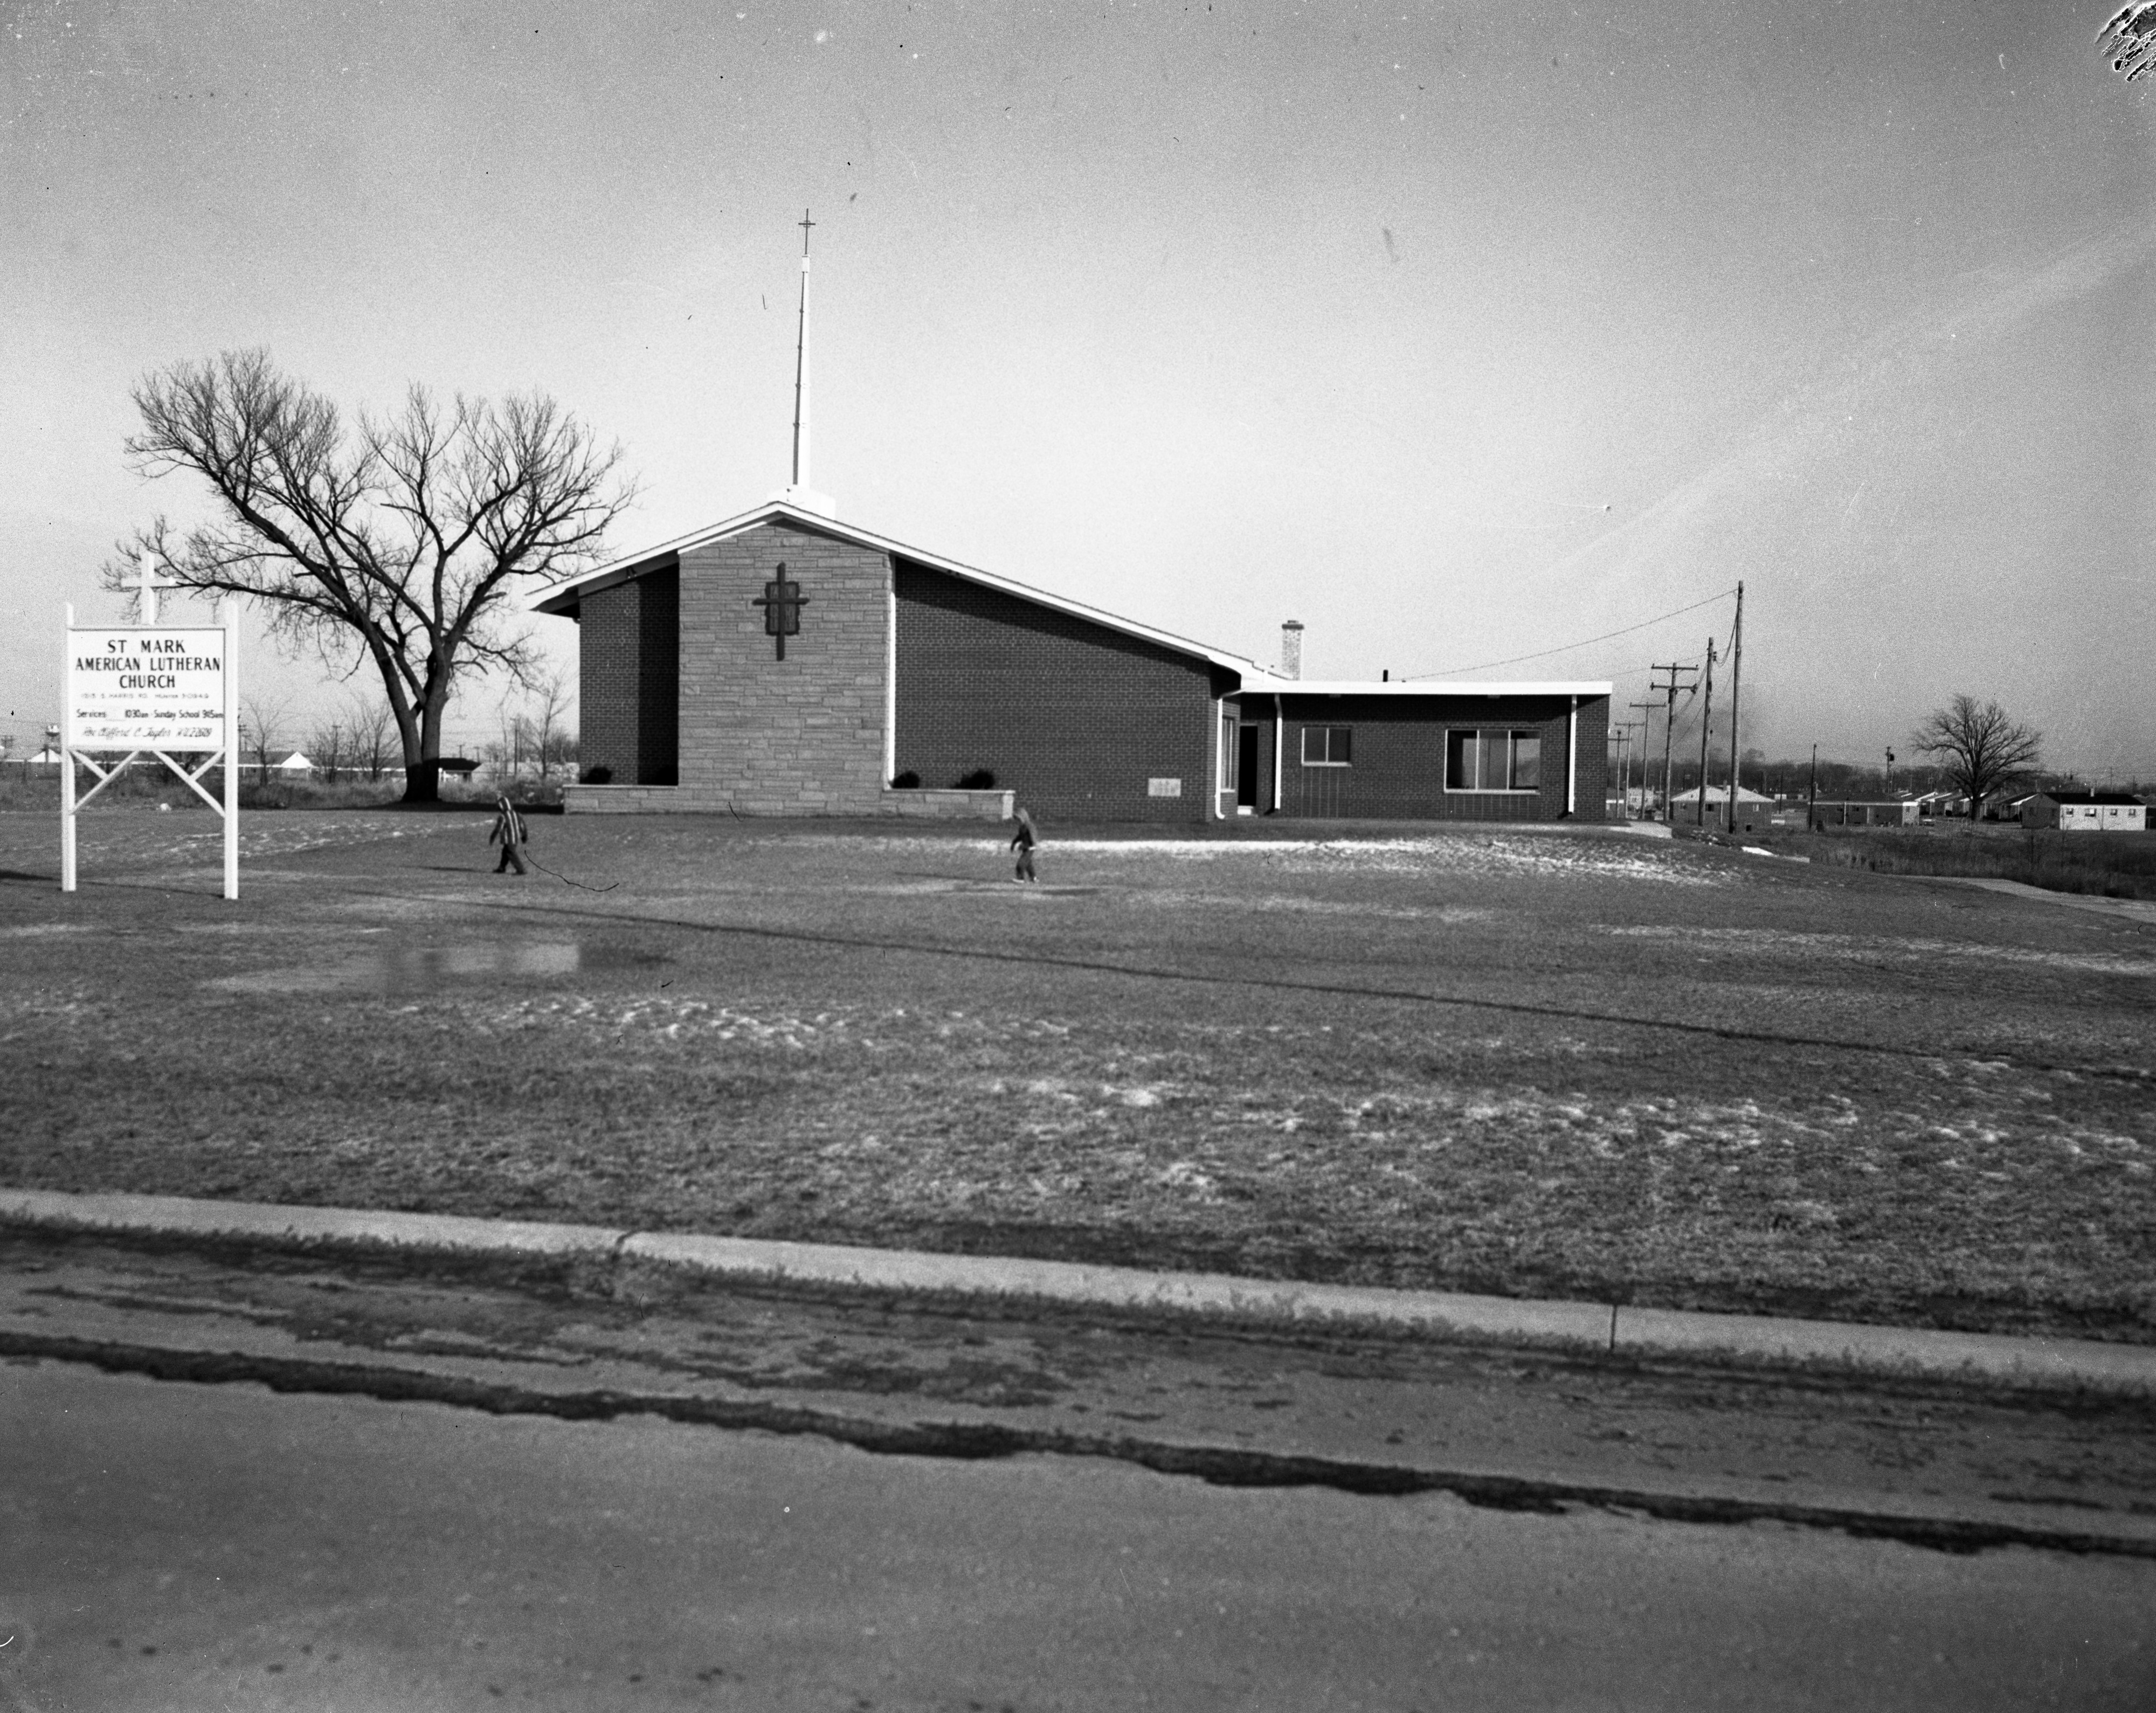 Exterior of St. Mark's Lutheran Church, Ypsilanti, March 1962 image